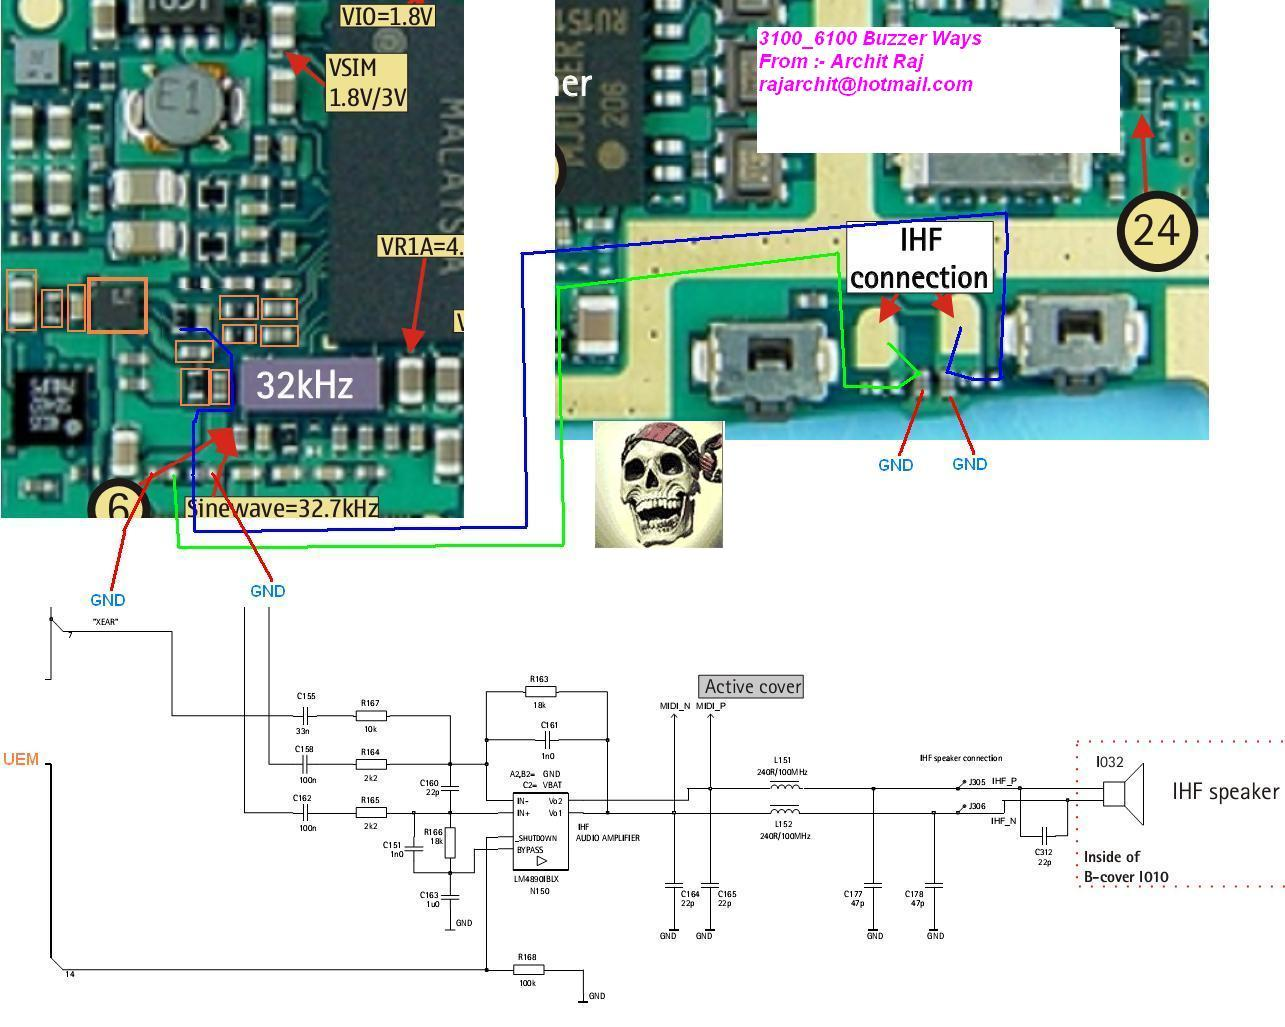 Remarkable Schematic Diagram Nokia C1 01 Nokia Microphone Mic Problem Picture Wiring 101 Olytiaxxcnl